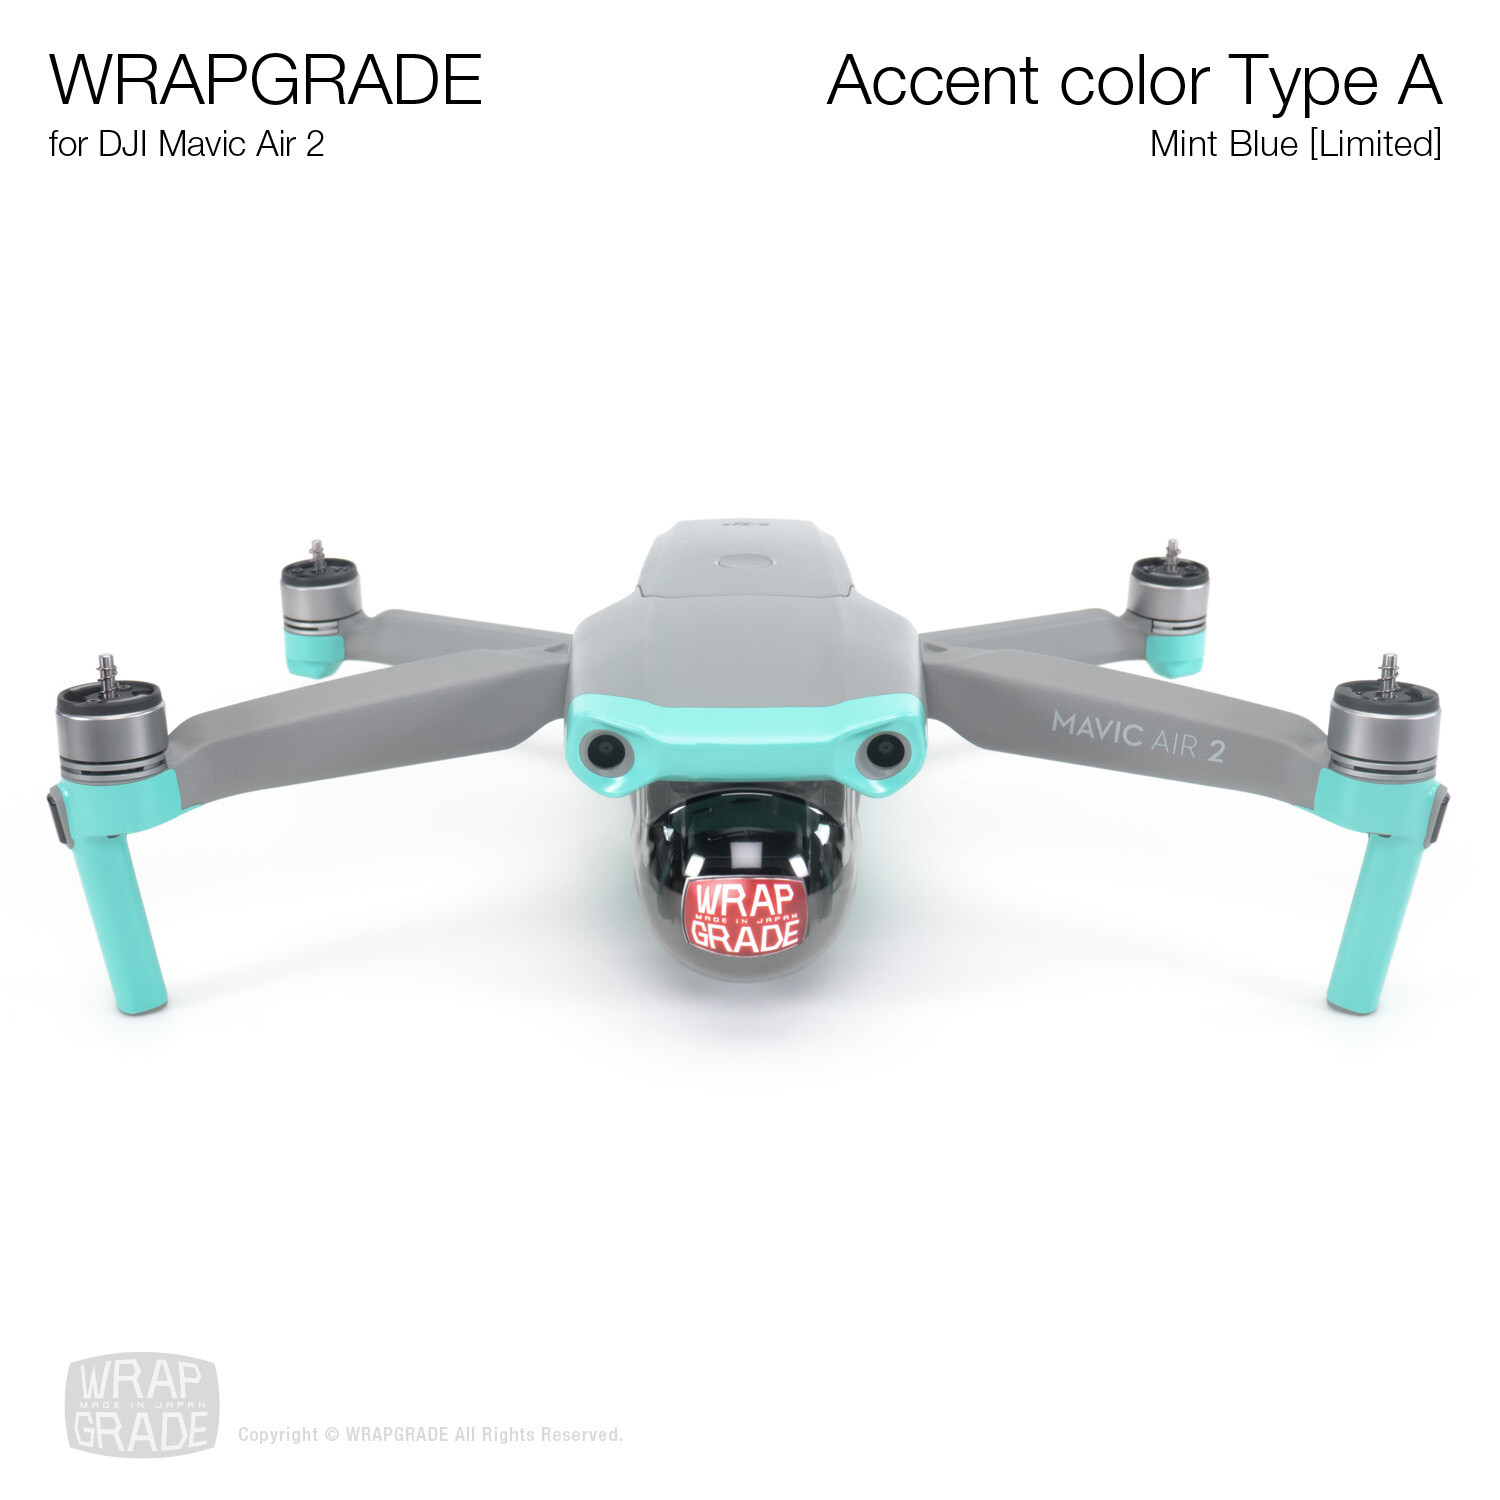 Wrapgrade for DJI Mavic Air 2   Accent Color A (MINT BLUE)